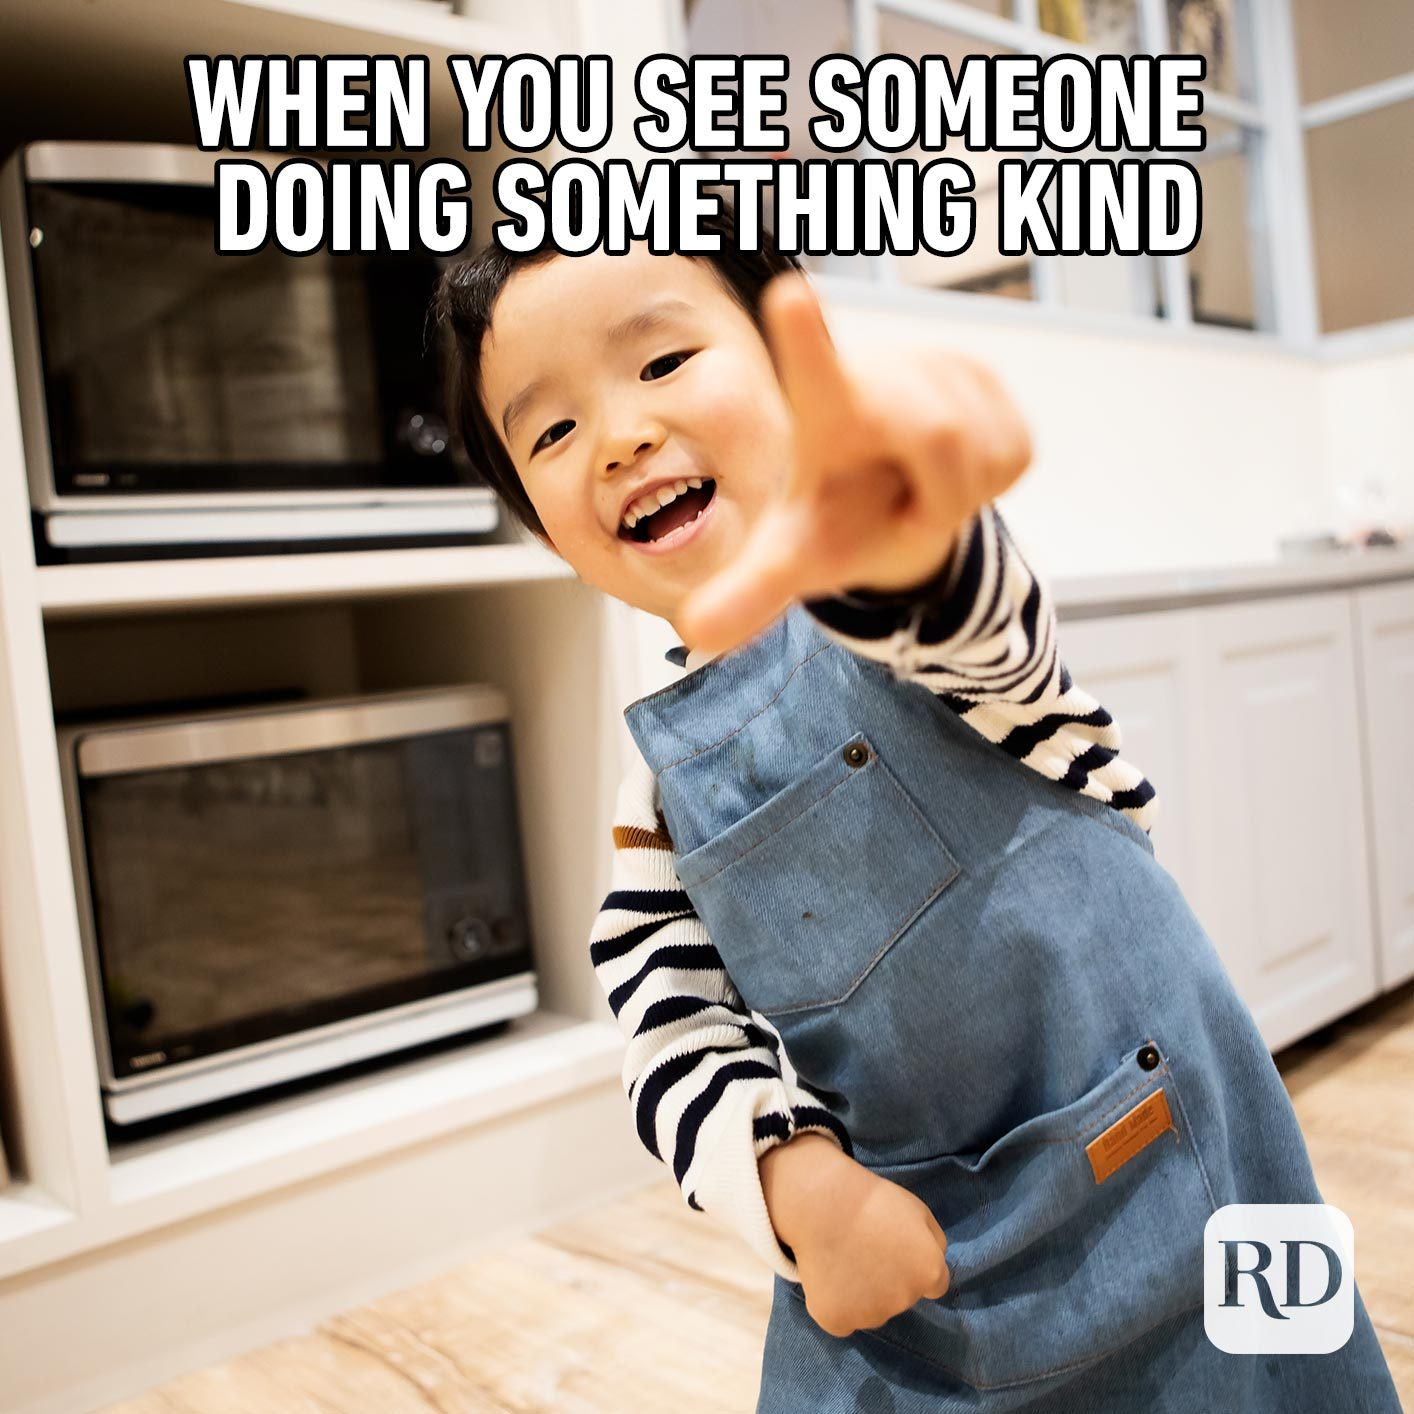 Child pointing at camera. Meme text: When you see someone doing something kind